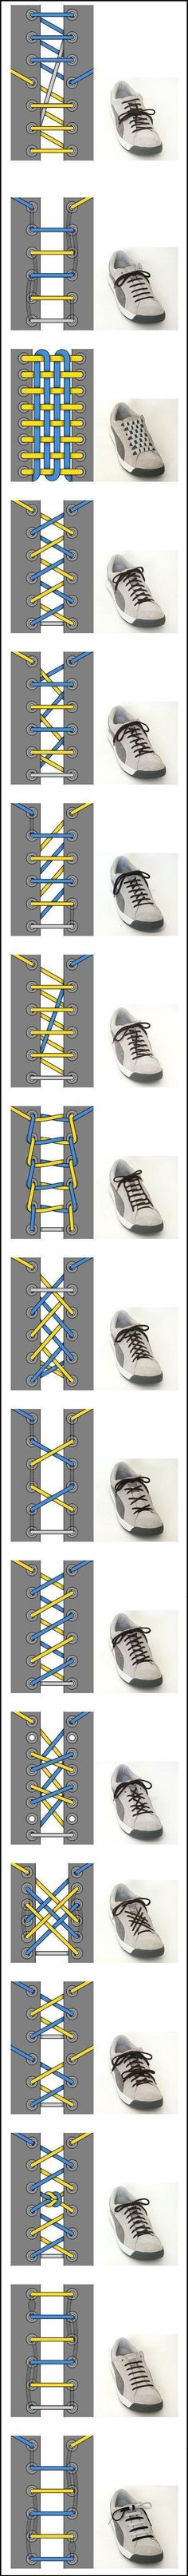 Shoe Lacing....crazy ideas!